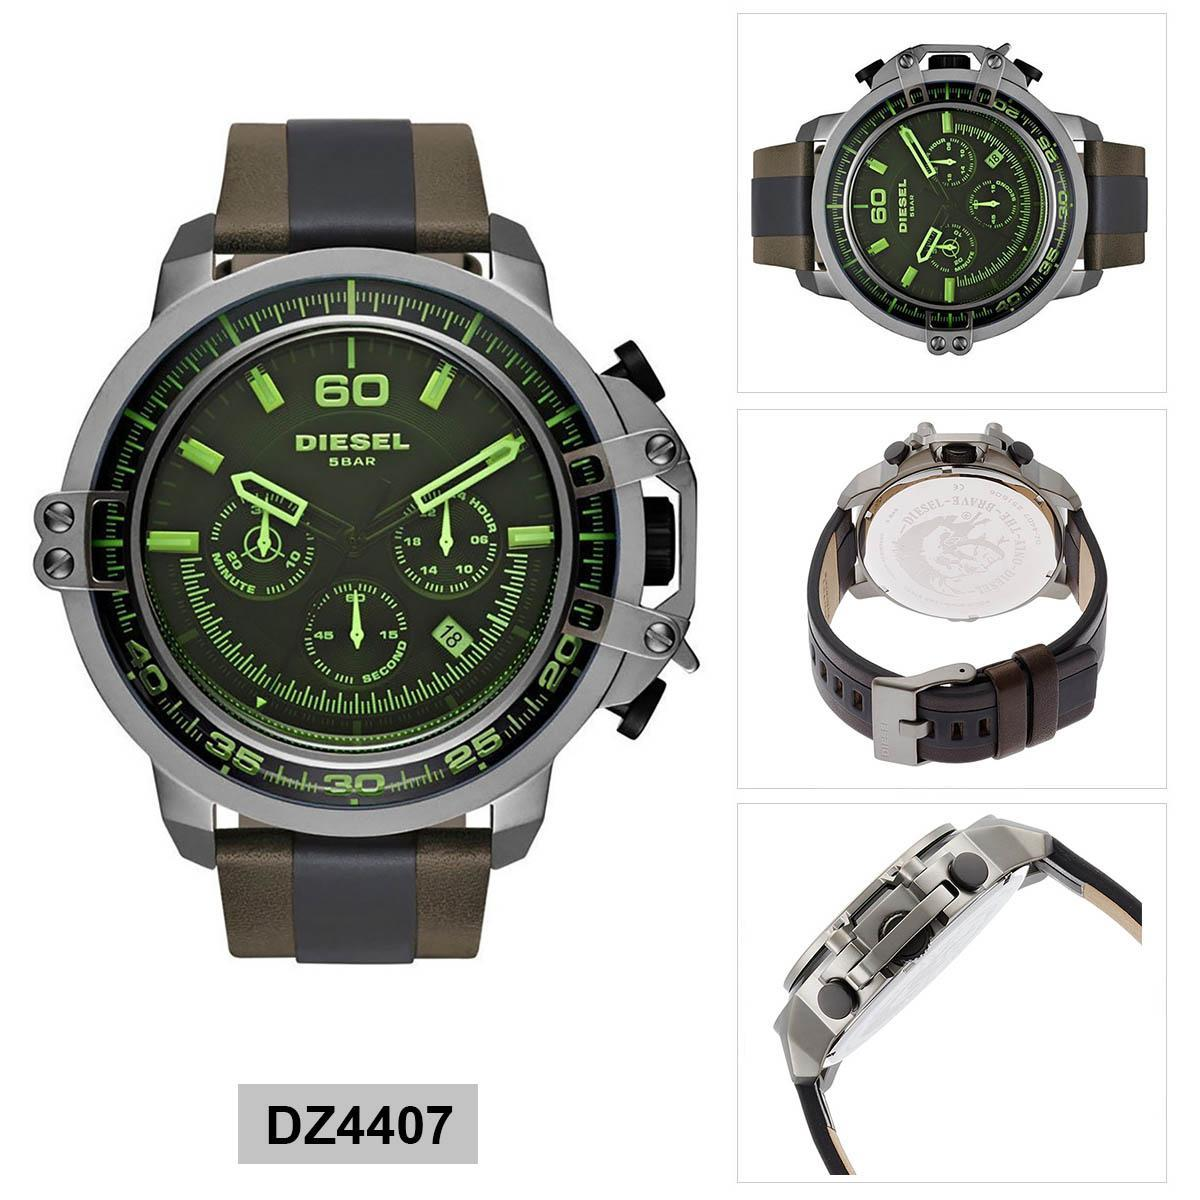 ยี่ห้อนี้ดีไหม  พระนครศรีอยุธยา Authentic Diesel Deadeye Chronograph Multicolored Stainless-Steel Case Leather Strap Mens DZ4407 2 Years Warranty